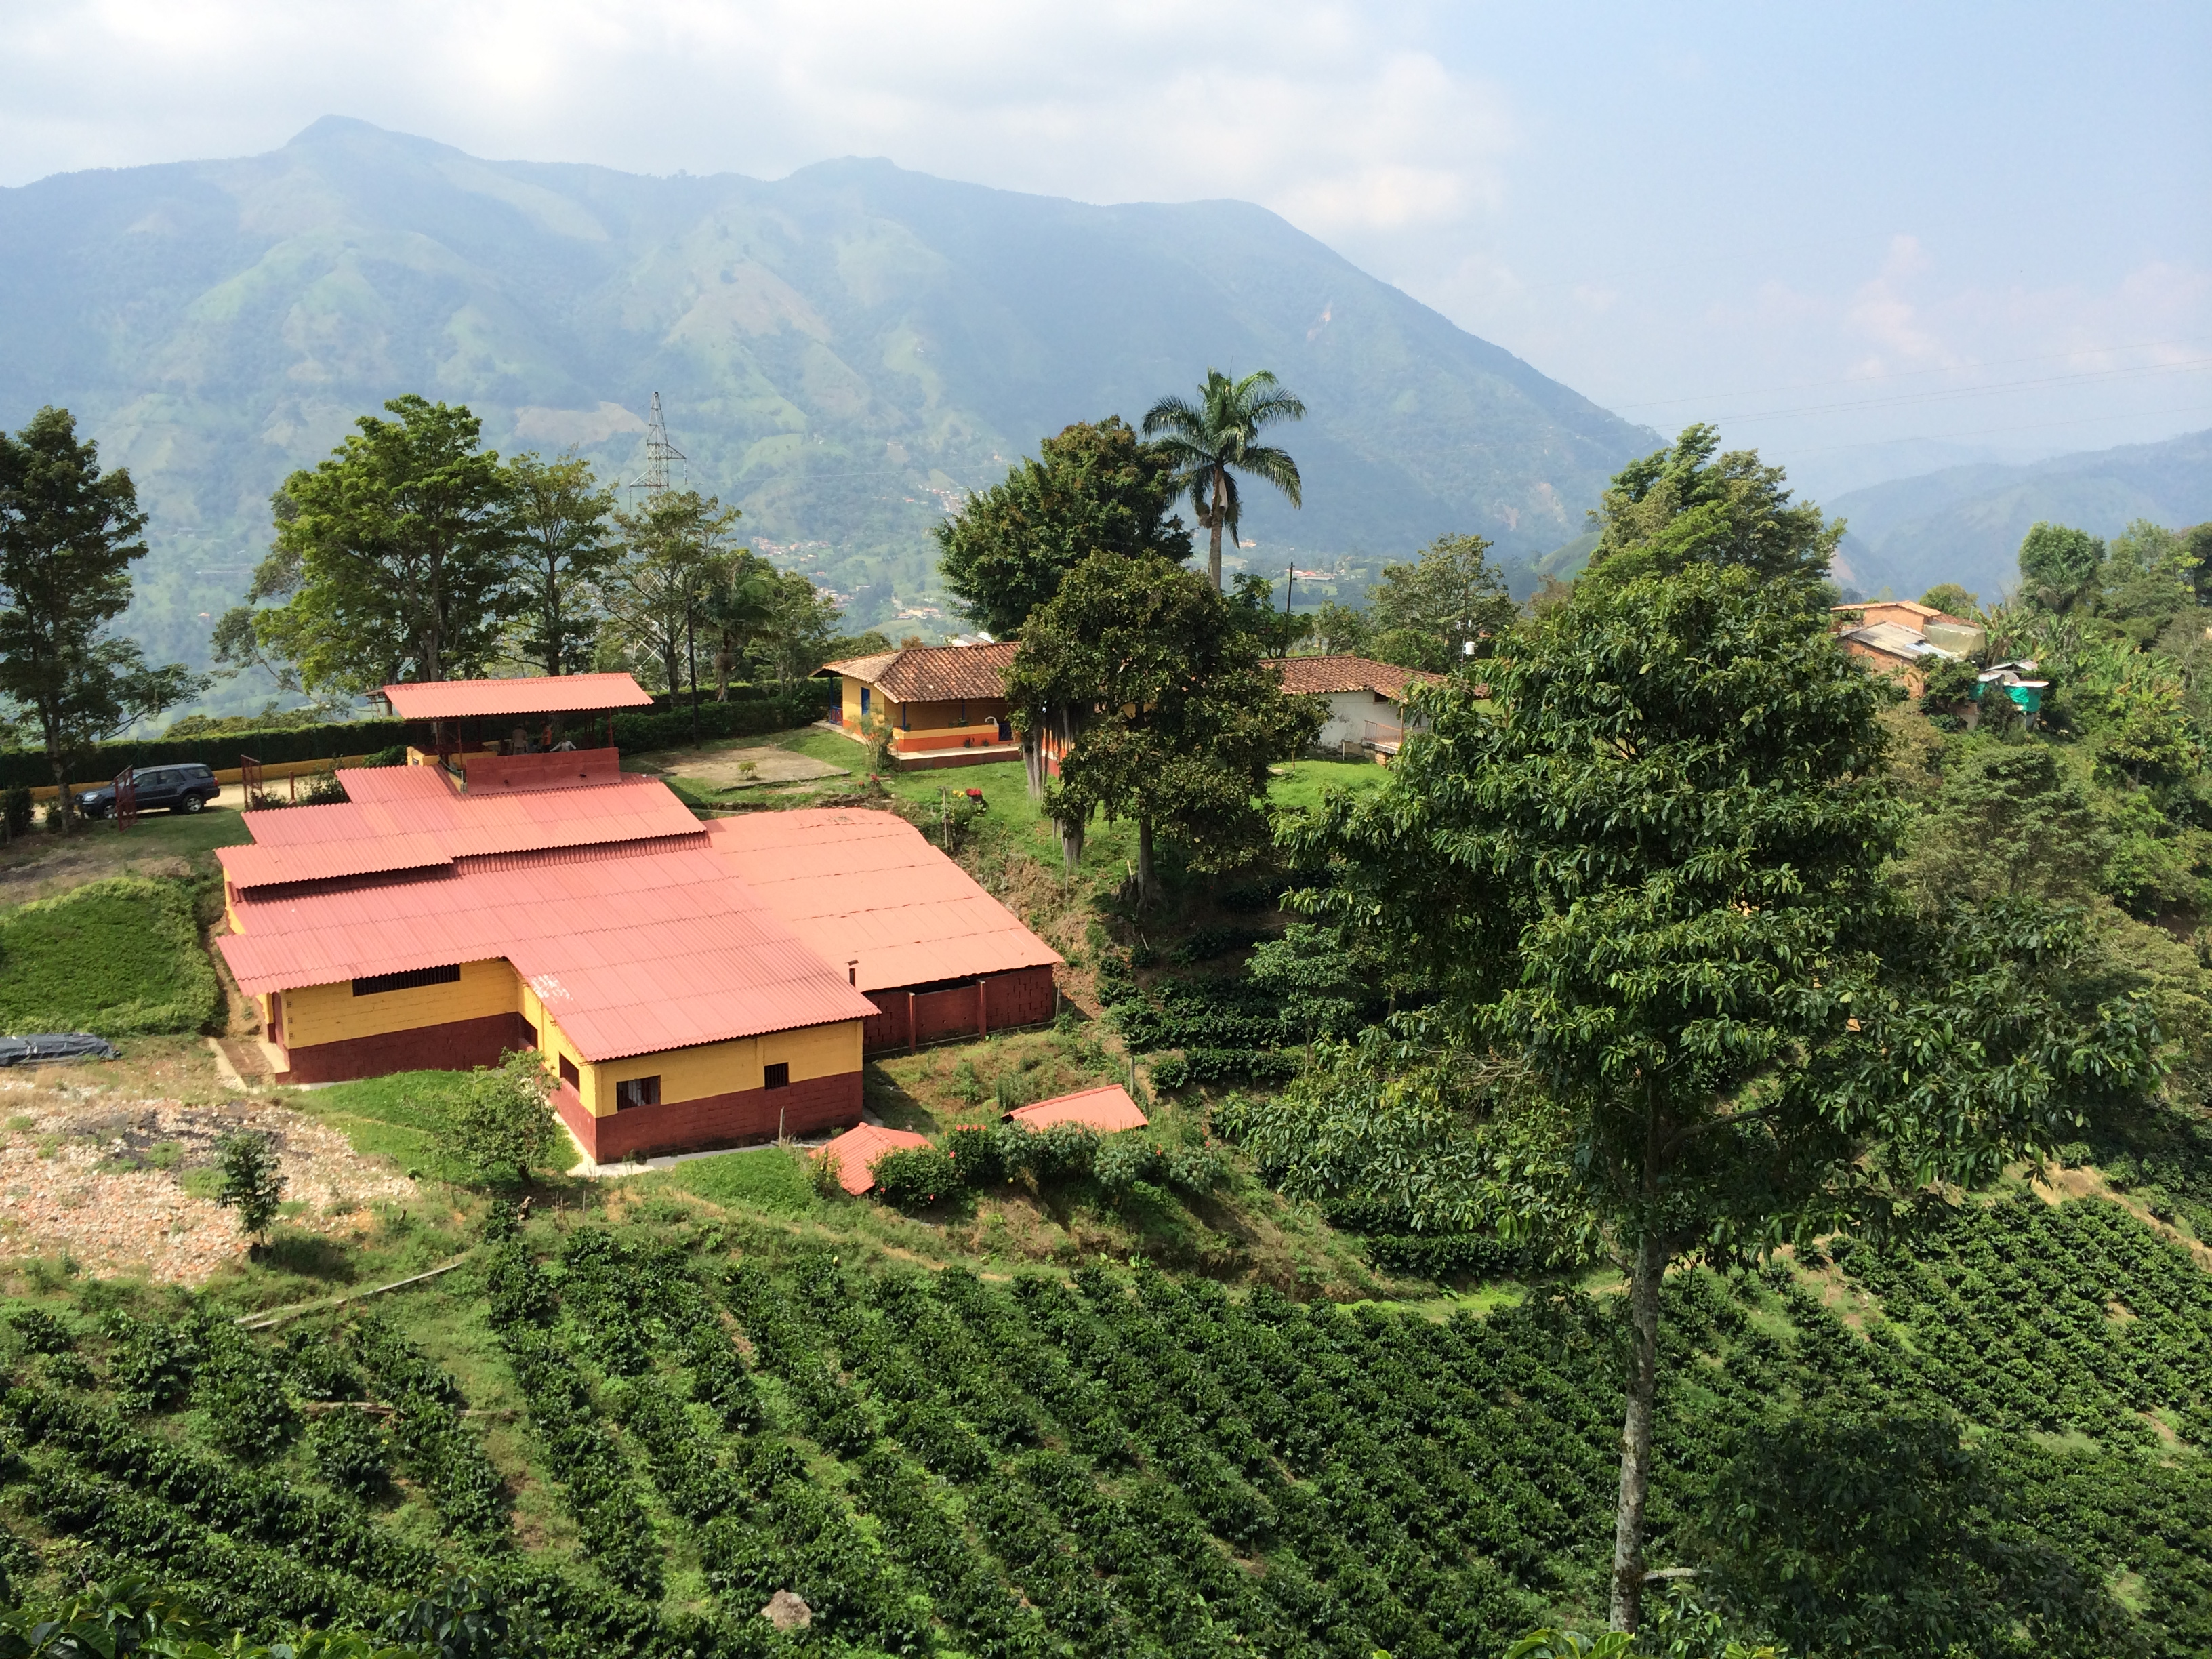 Finca Veracruz via @carvetiicoffee